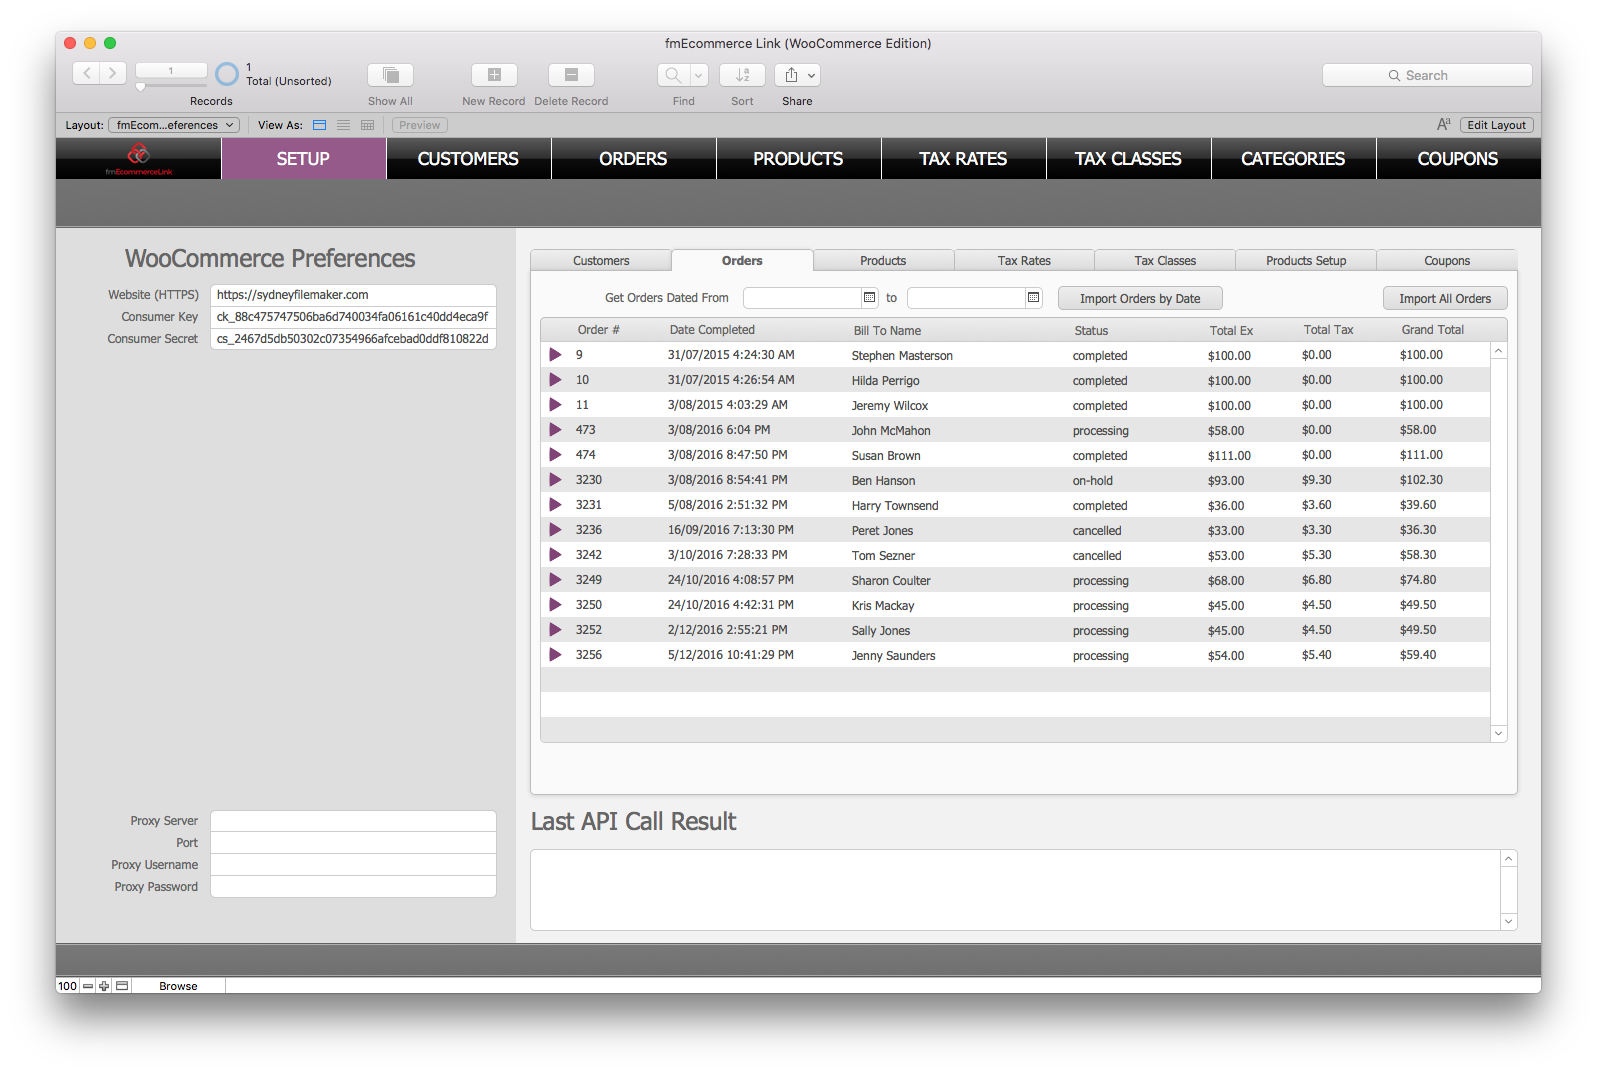 fmEcommerce solution in FileMaker Pro